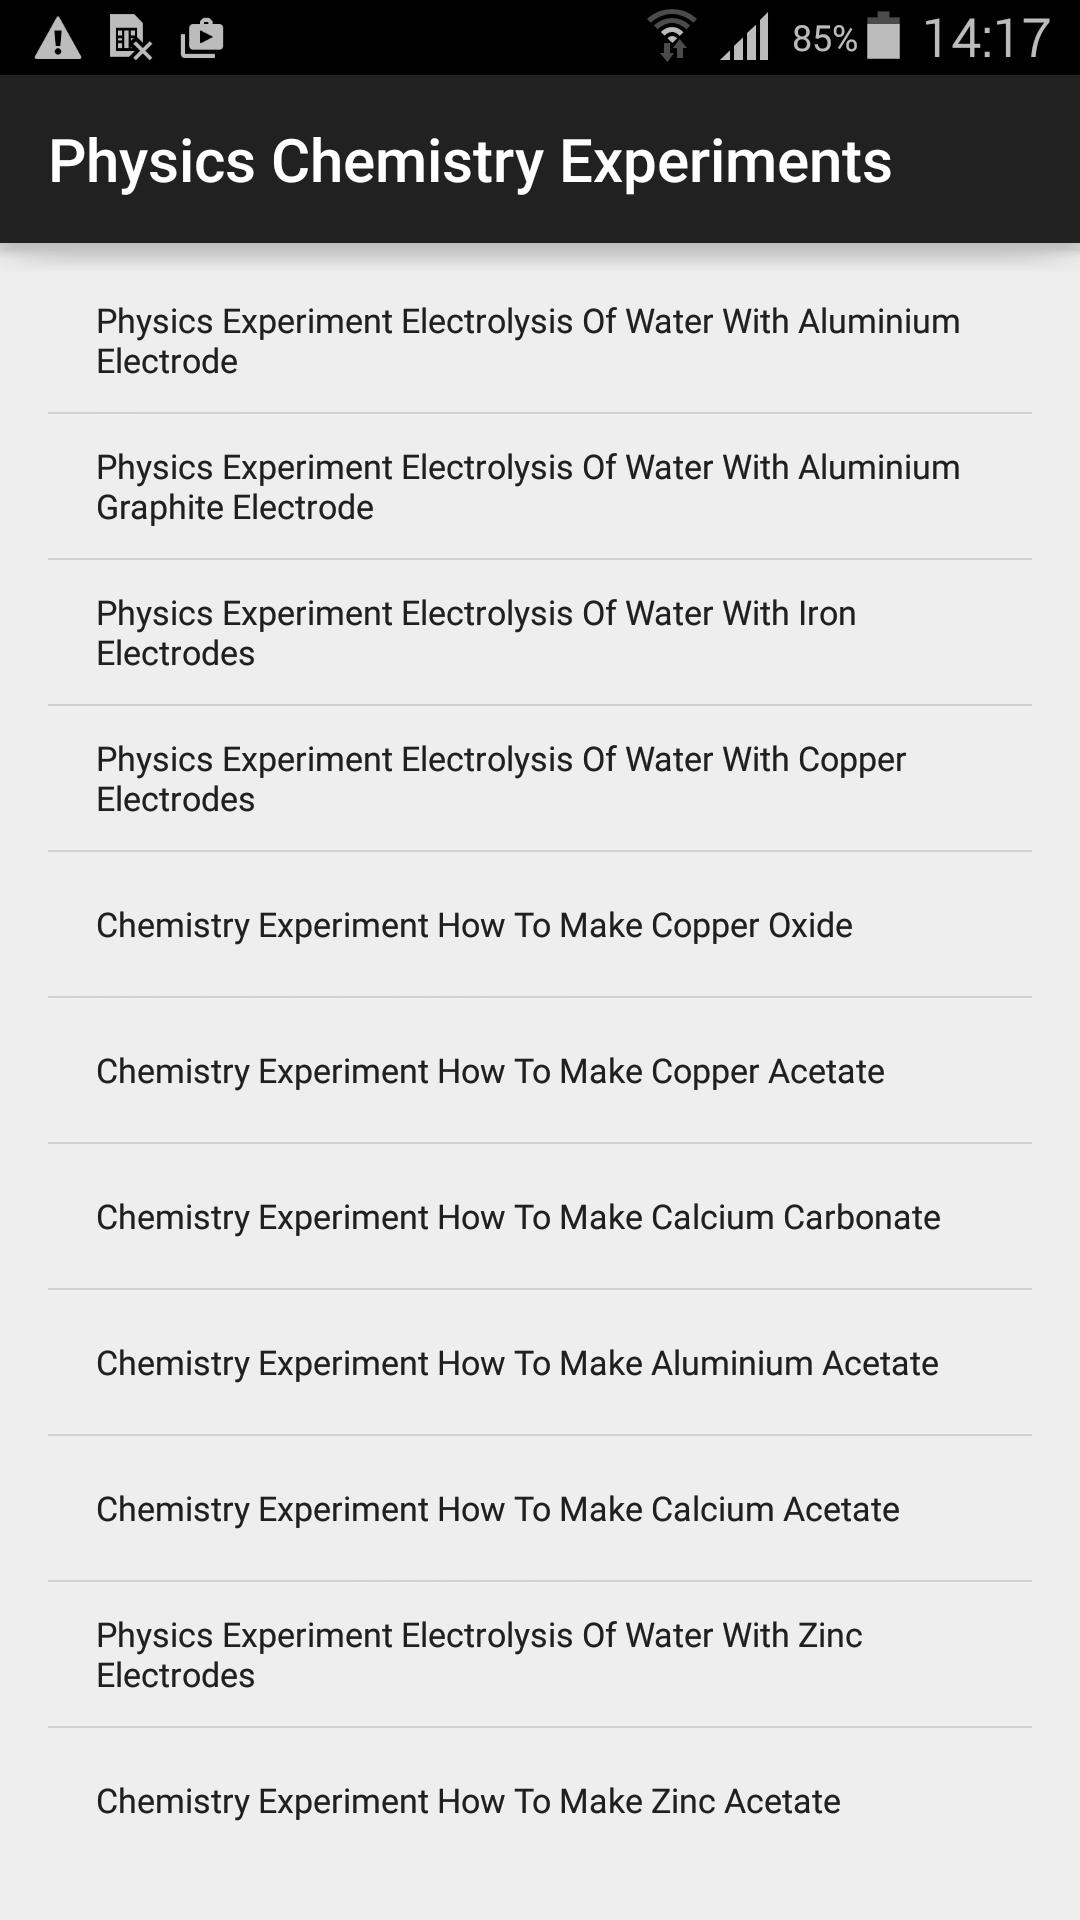 Physics Chemistry Experiments for Android - APK Download